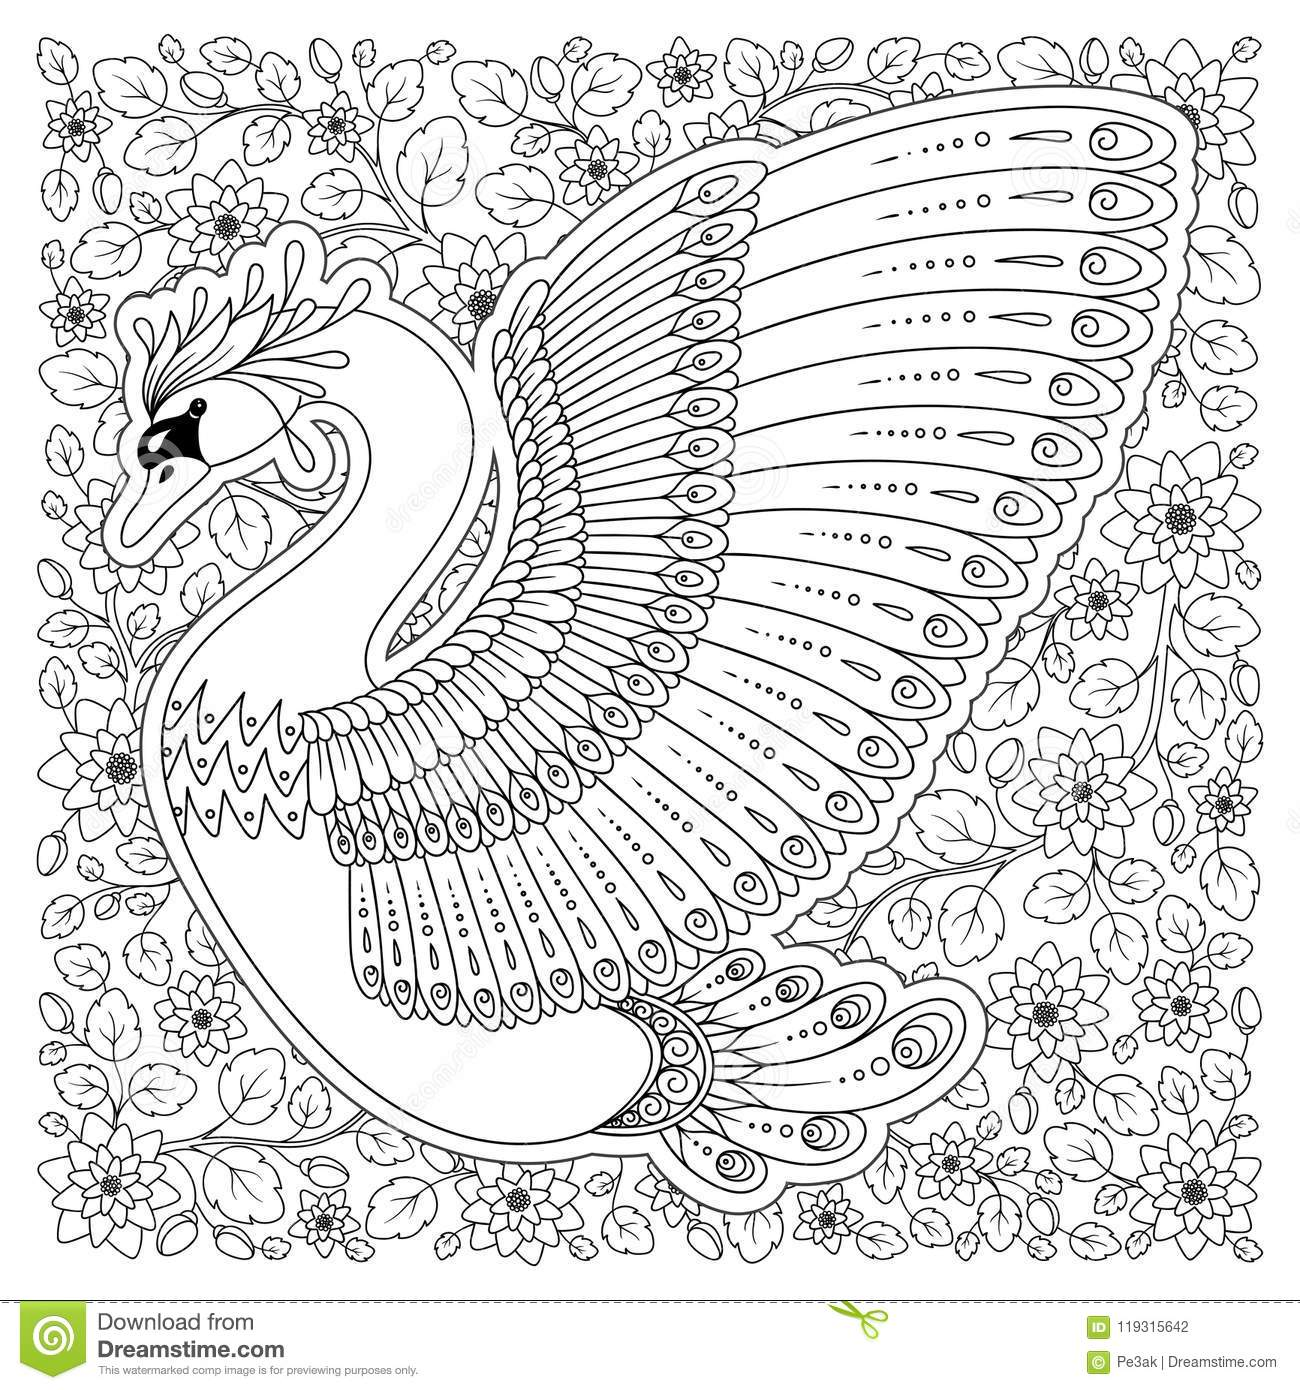 Exotic frog coloring page to print or download for fkids | 1390x1300